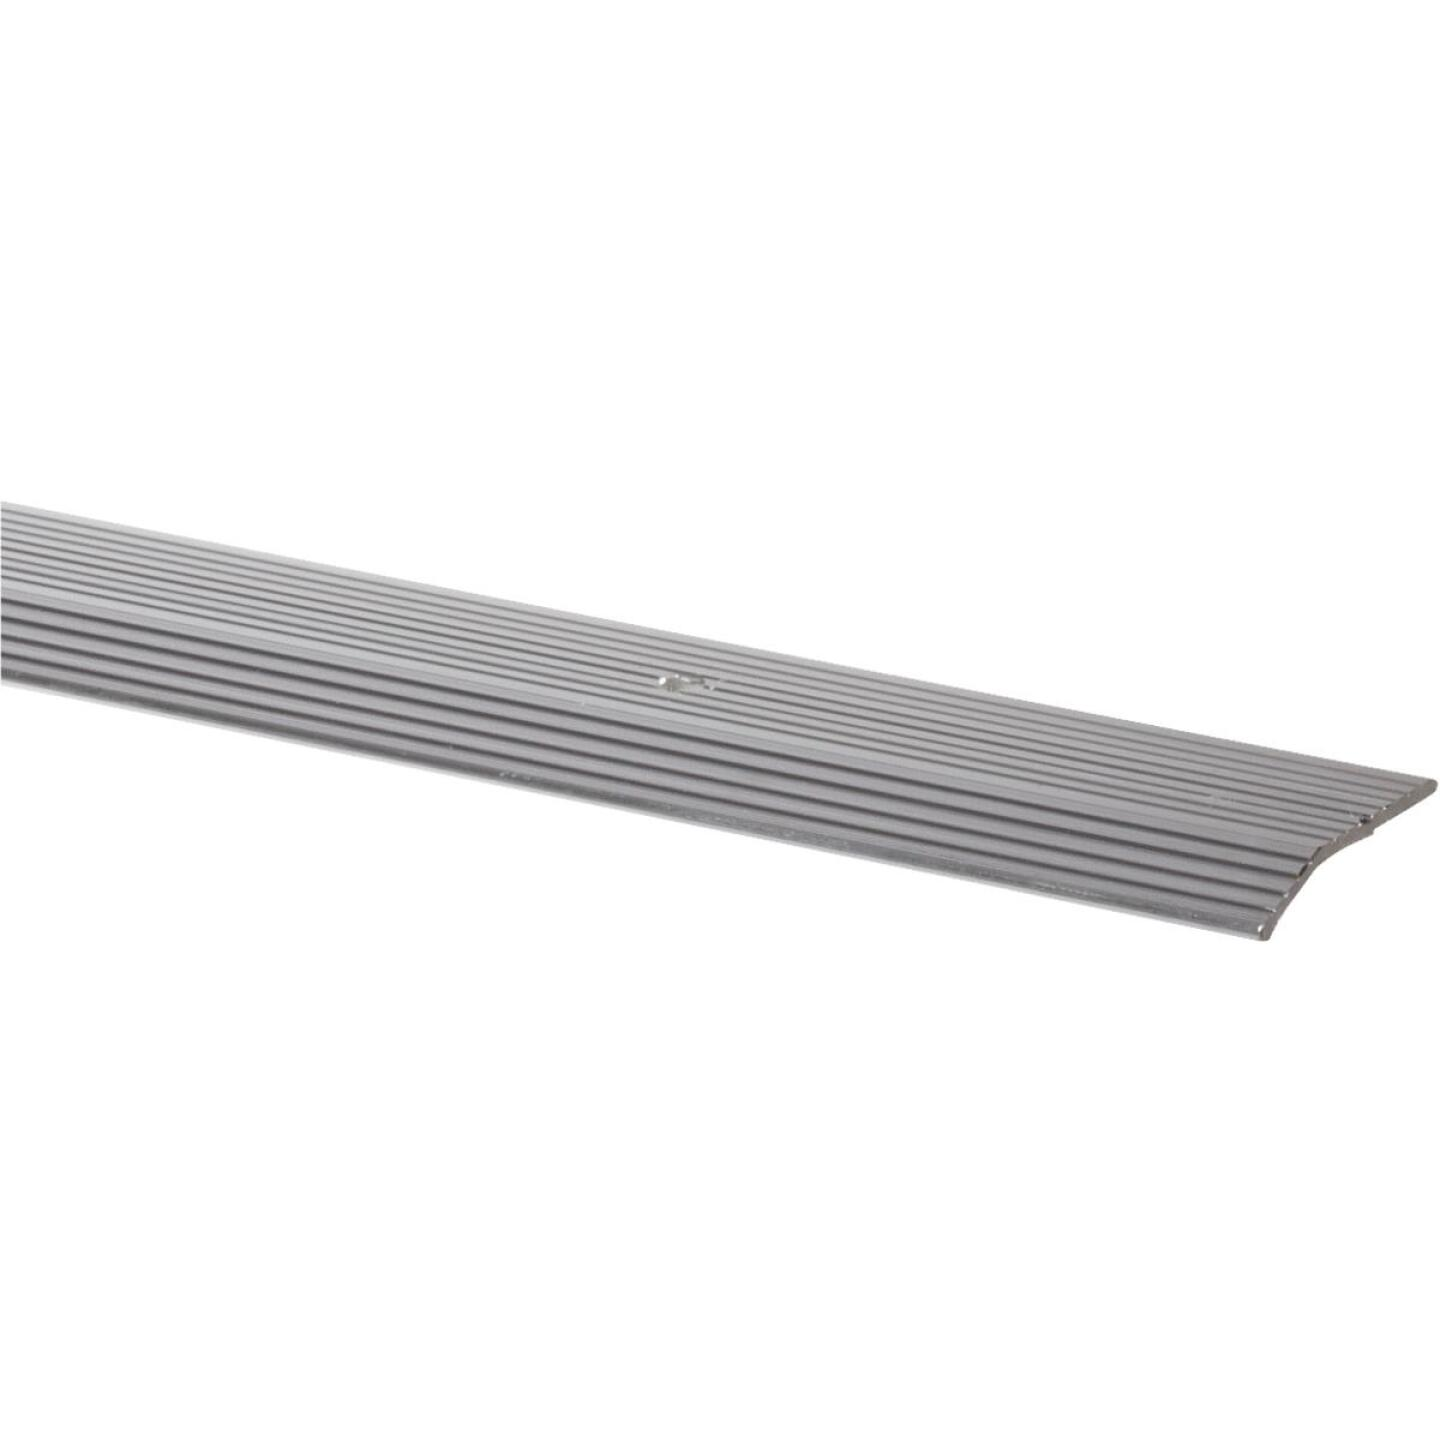 M-D Satin Silver Fluted 1-3/8 In. x 6 Ft. Aluminum Carpet Trim Bar, Wide Image 1